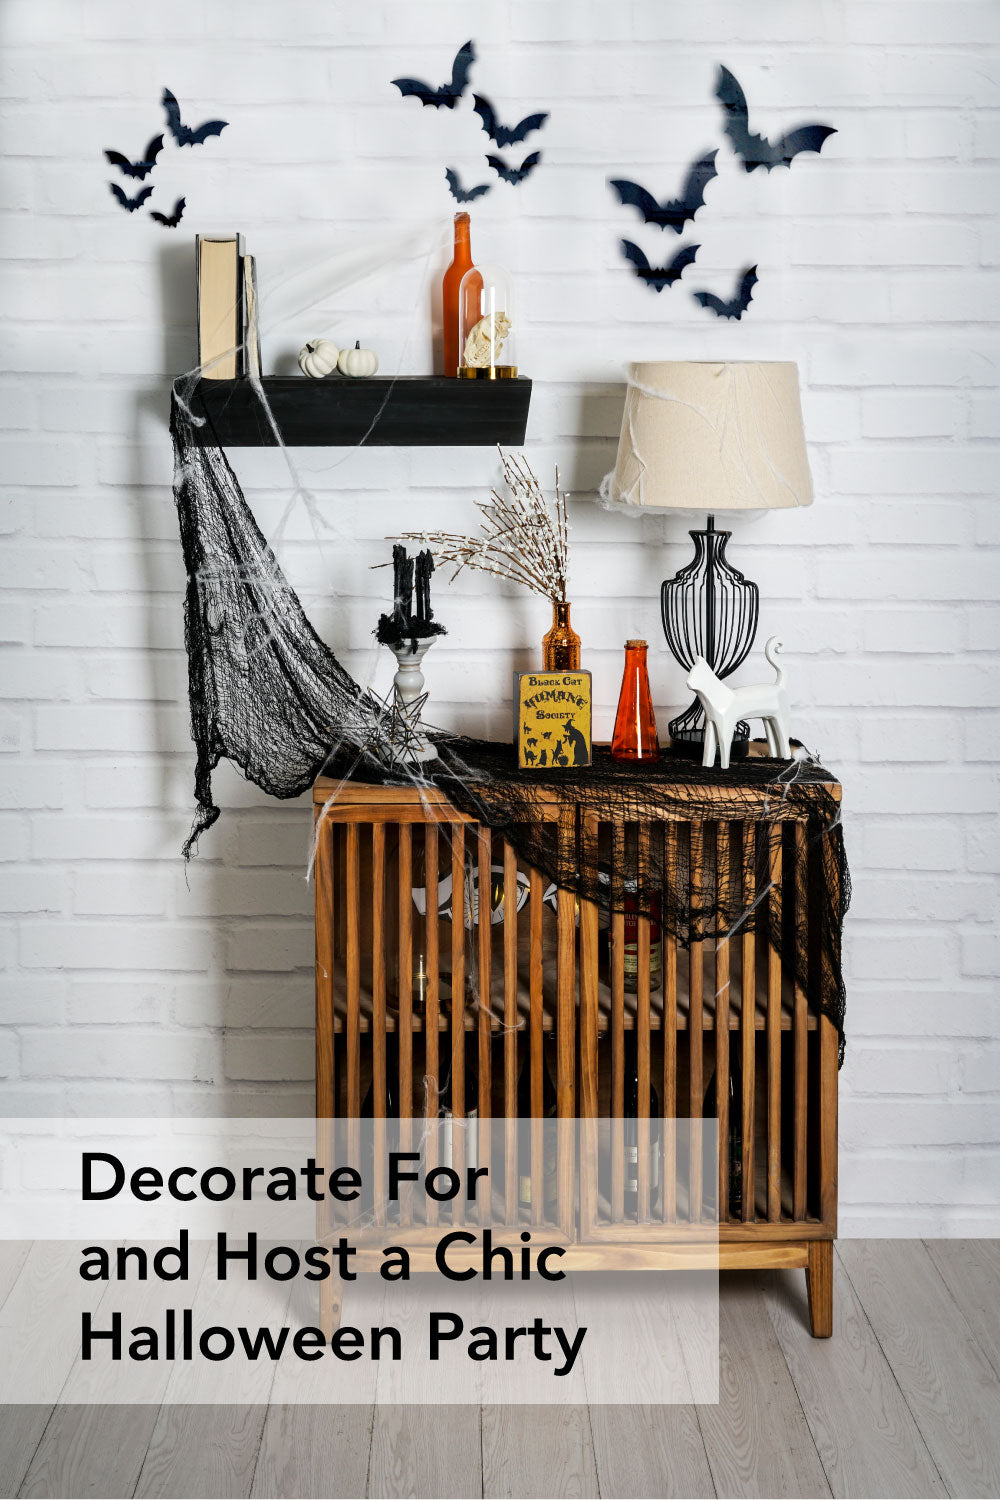 decorate for and host a chic halloween party graphic for pinterest. image of chic Halloween decorations on wood cabinet and black shelf